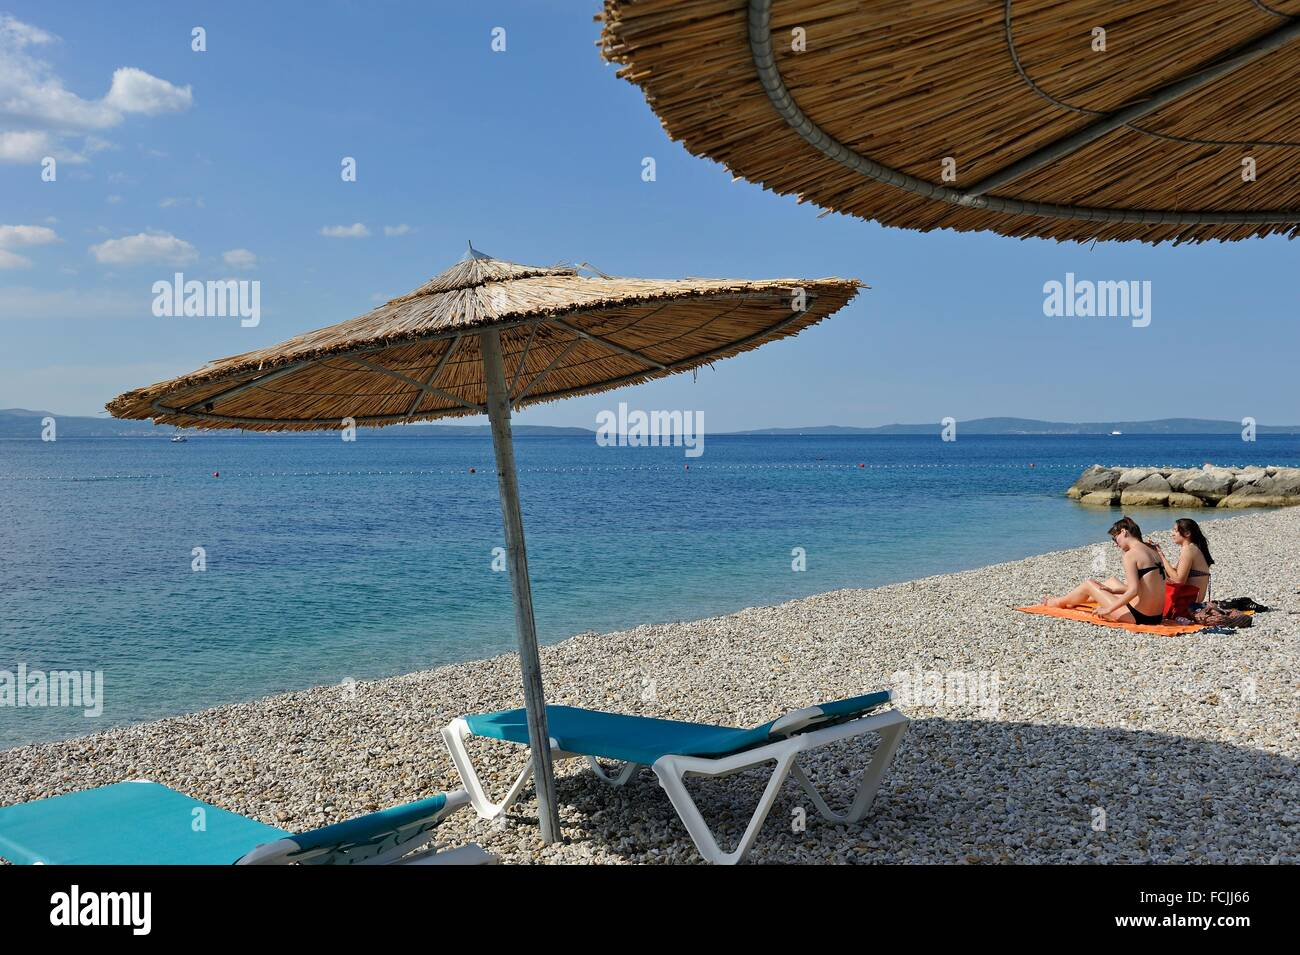 beach of Radisson Blu Resort, Split, Croatia, Southeast Europe. - Stock Image